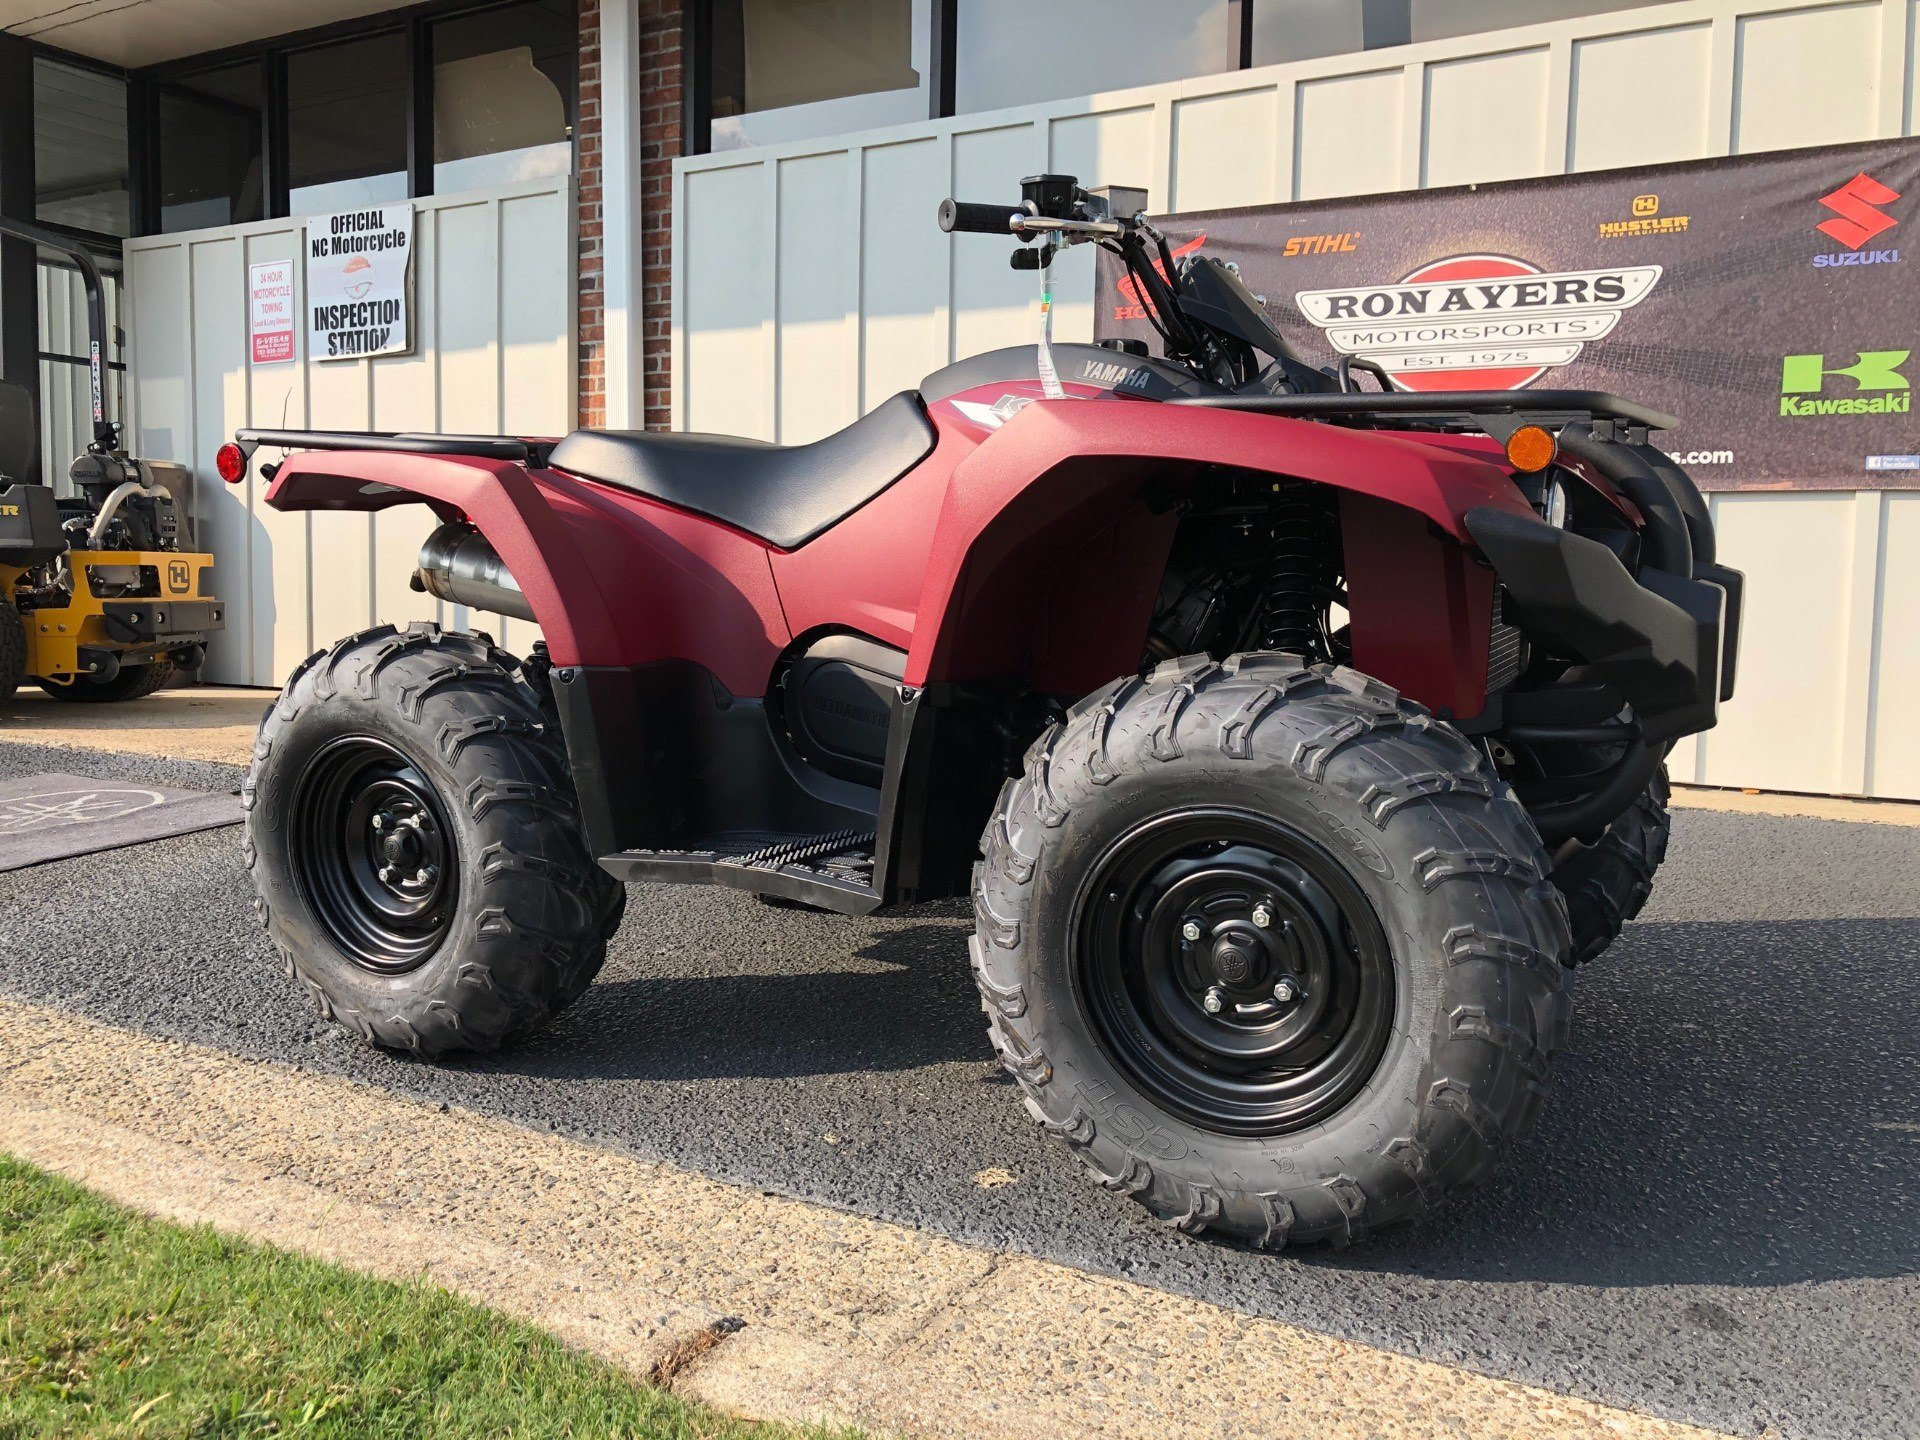 2020 Yamaha Kodiak 450 in Greenville, North Carolina - Photo 2